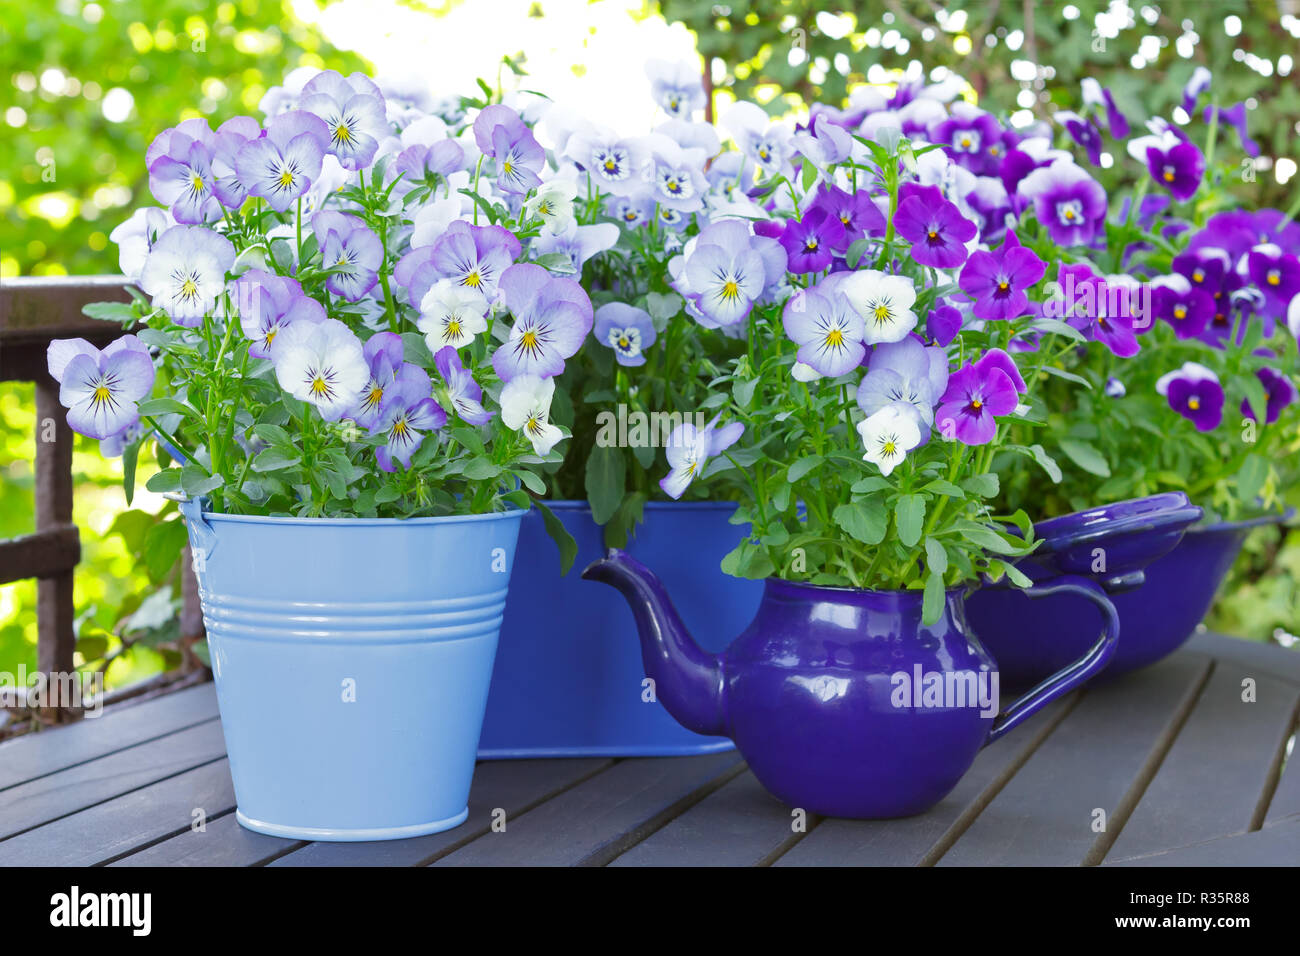 Purple, blue and violet pansy flowers in 3 pots and an enameled jug on a wooden balcony table in spring, background template Stock Photo